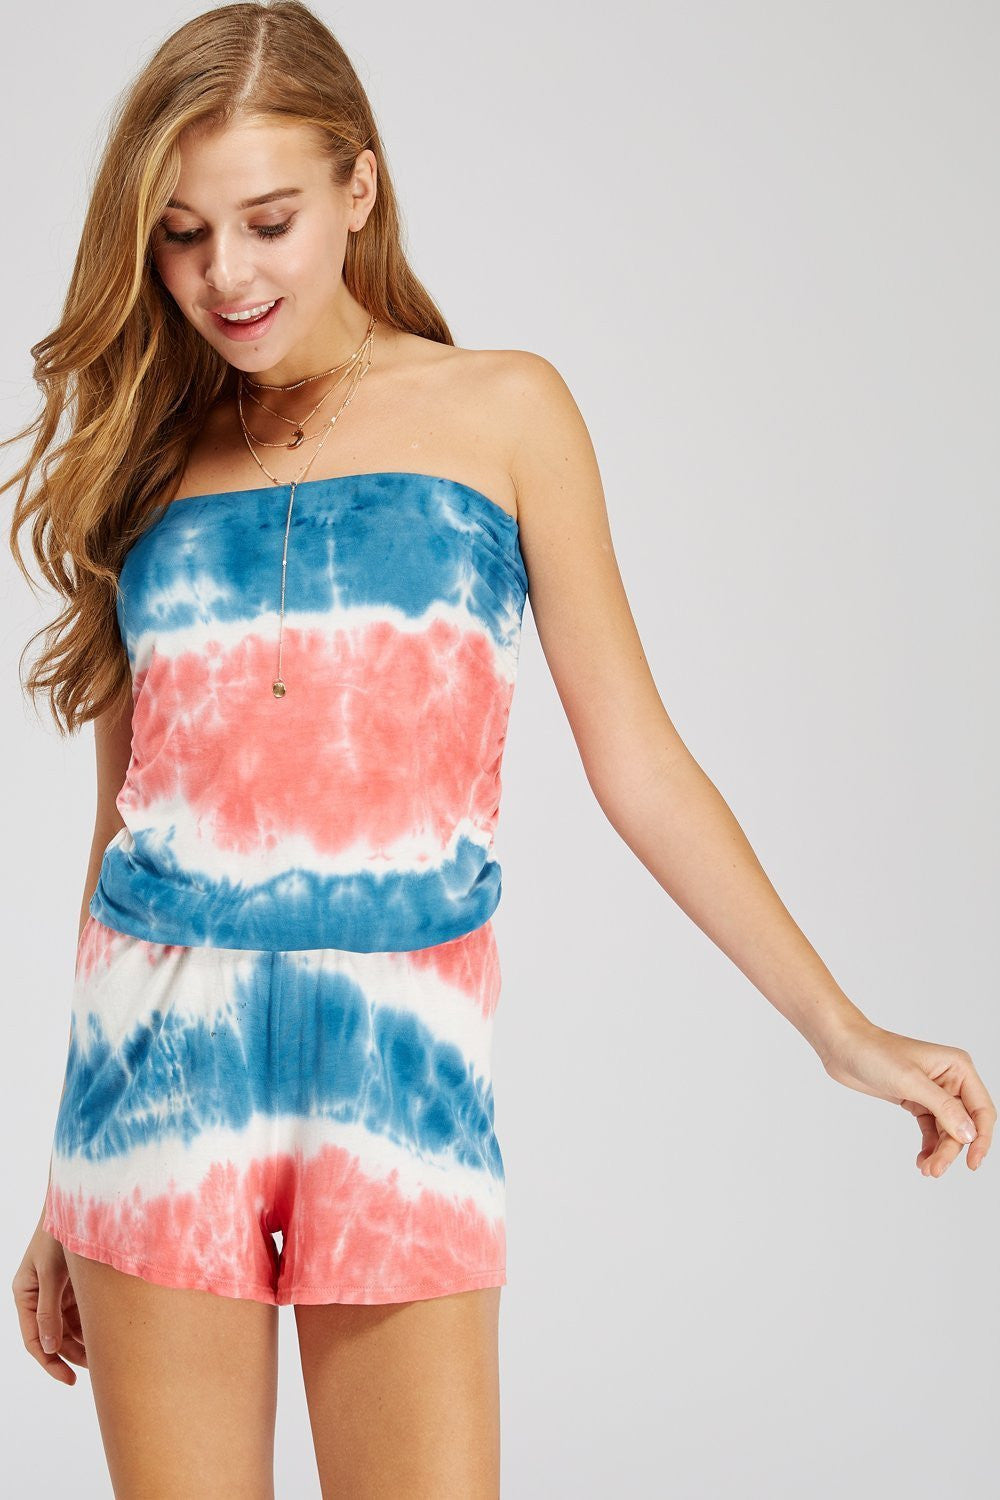 Wholesale Clothing, Online Wholesale Clothing, Women Clothing, Bohemian, Free People, tiedye, specialty wash, wholesale seller, wholesale women clothing shop, gypsy look, USA made, URBAN X APPAREL-ROMPERS-URP30077B, fashiontrend2019